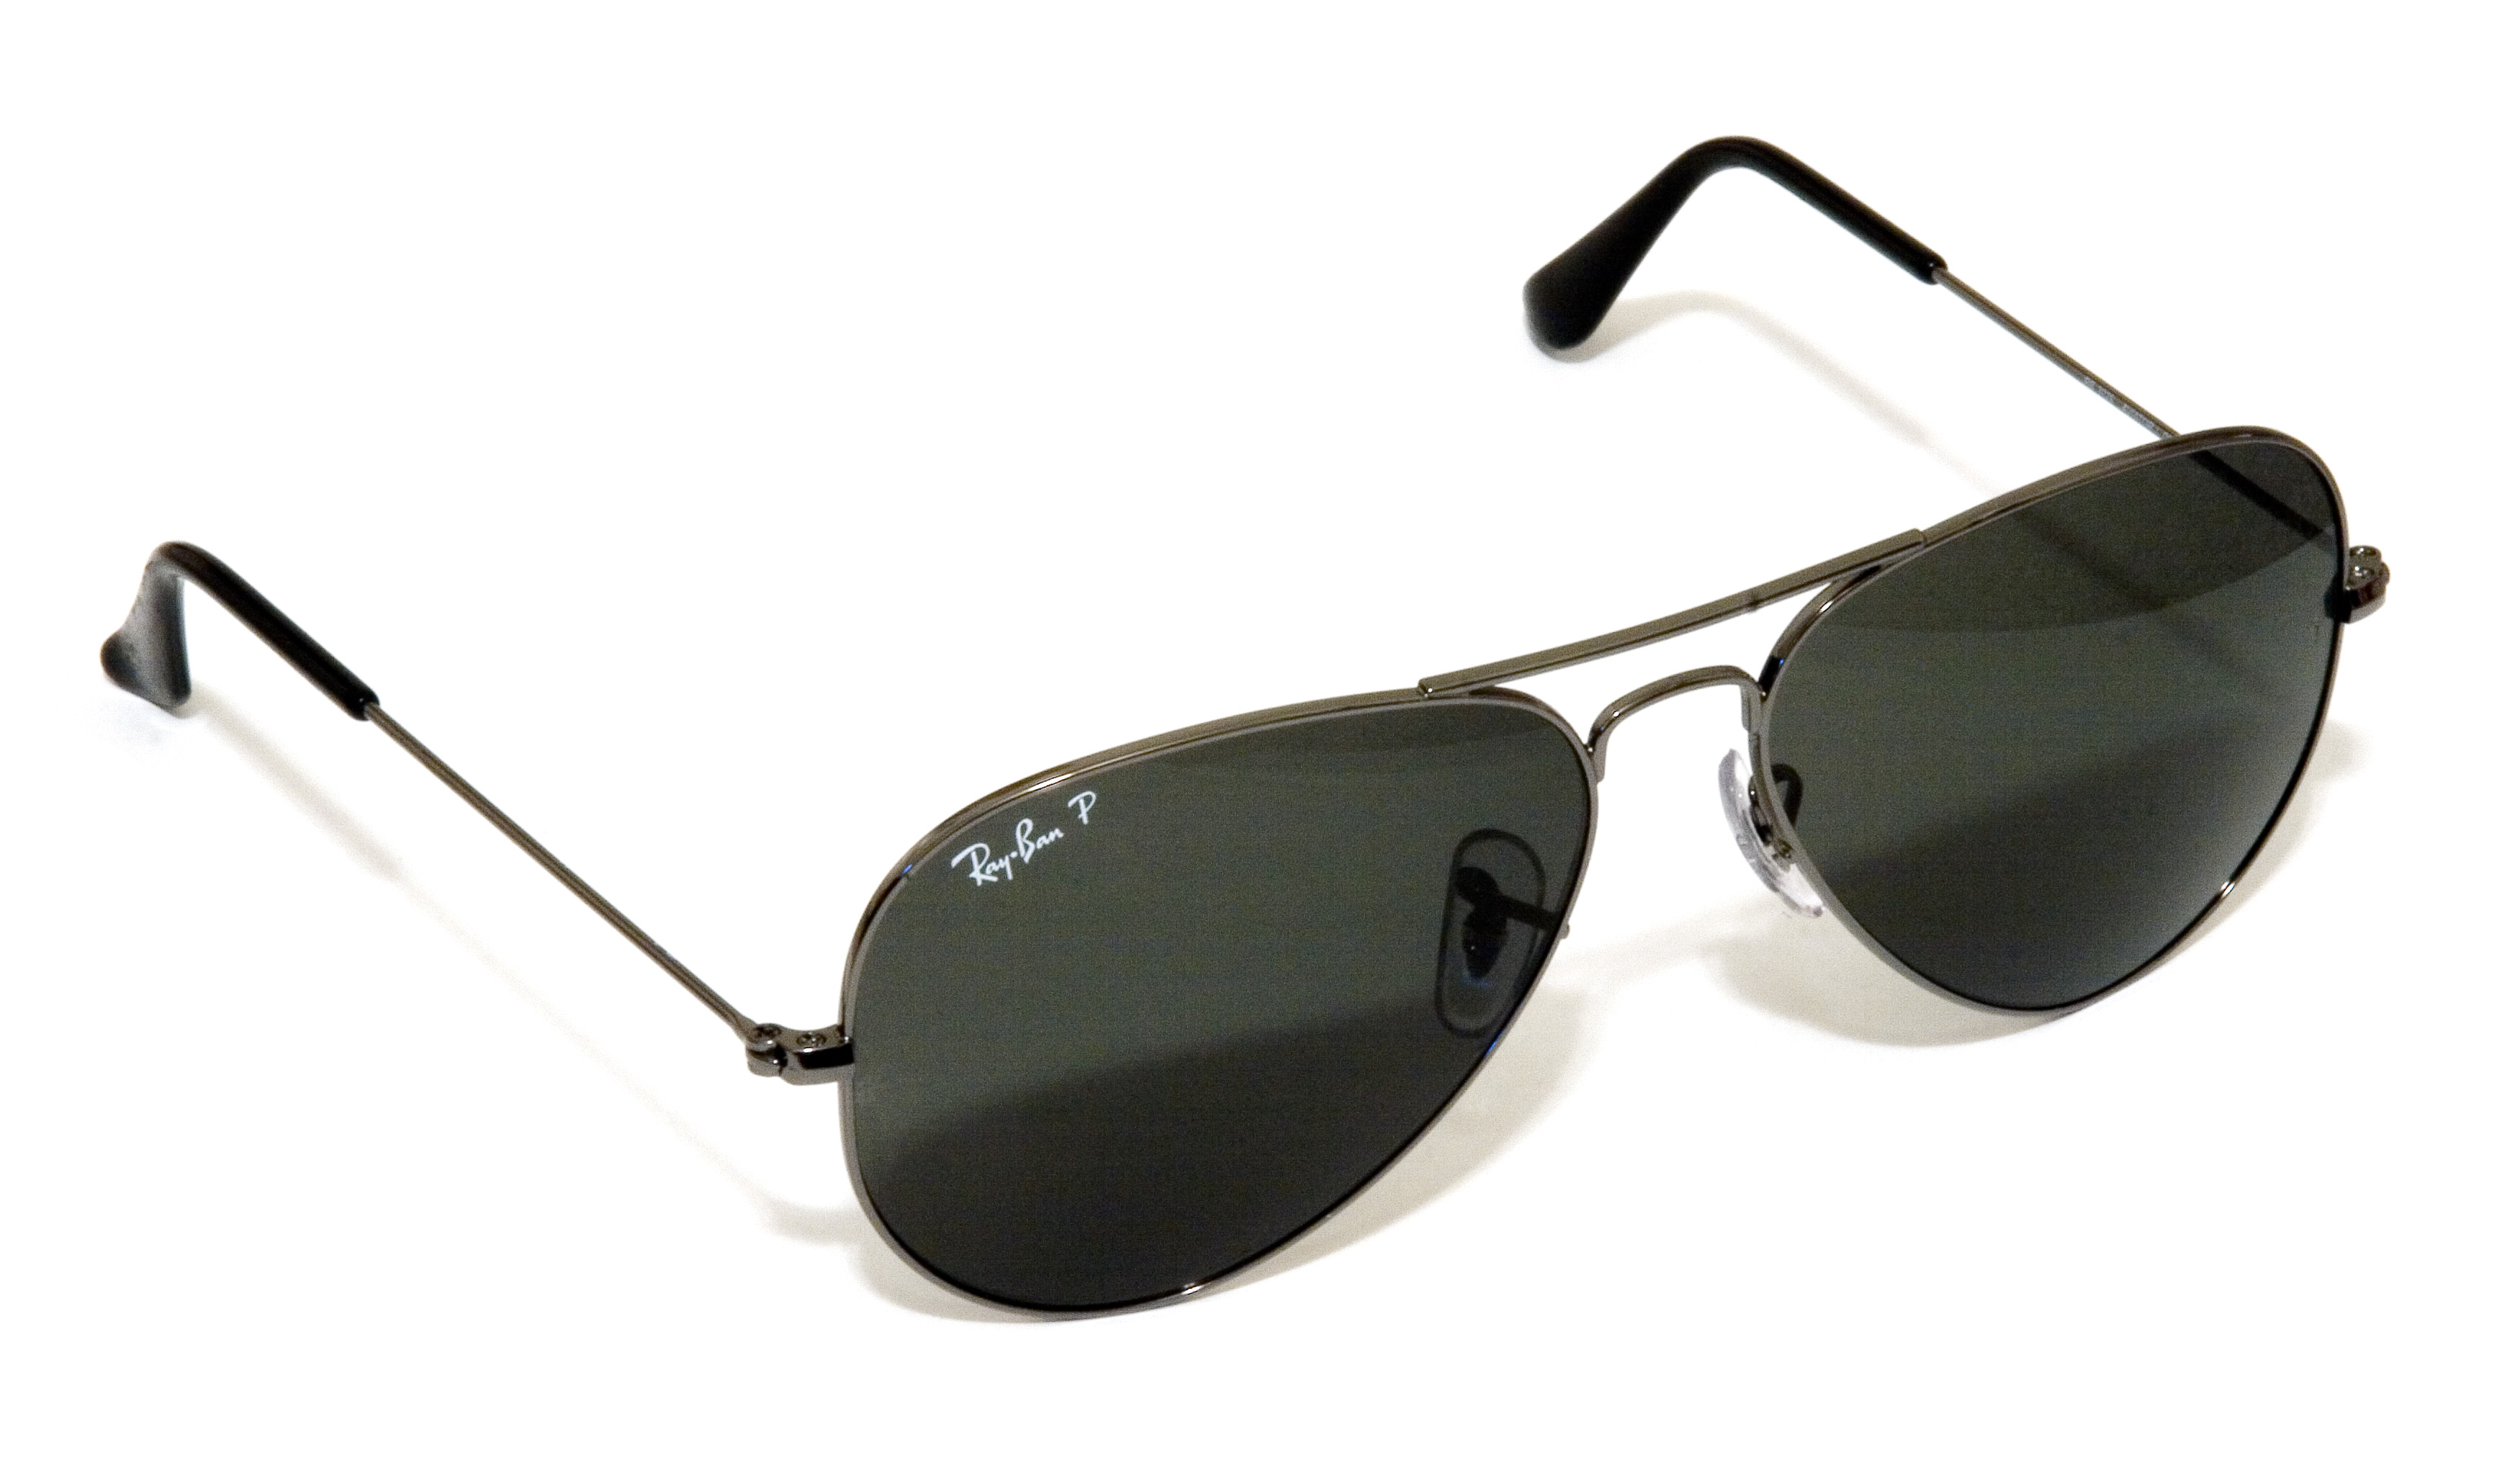 aa0aa286baa213 Aviator sunglasses - Wikipedia